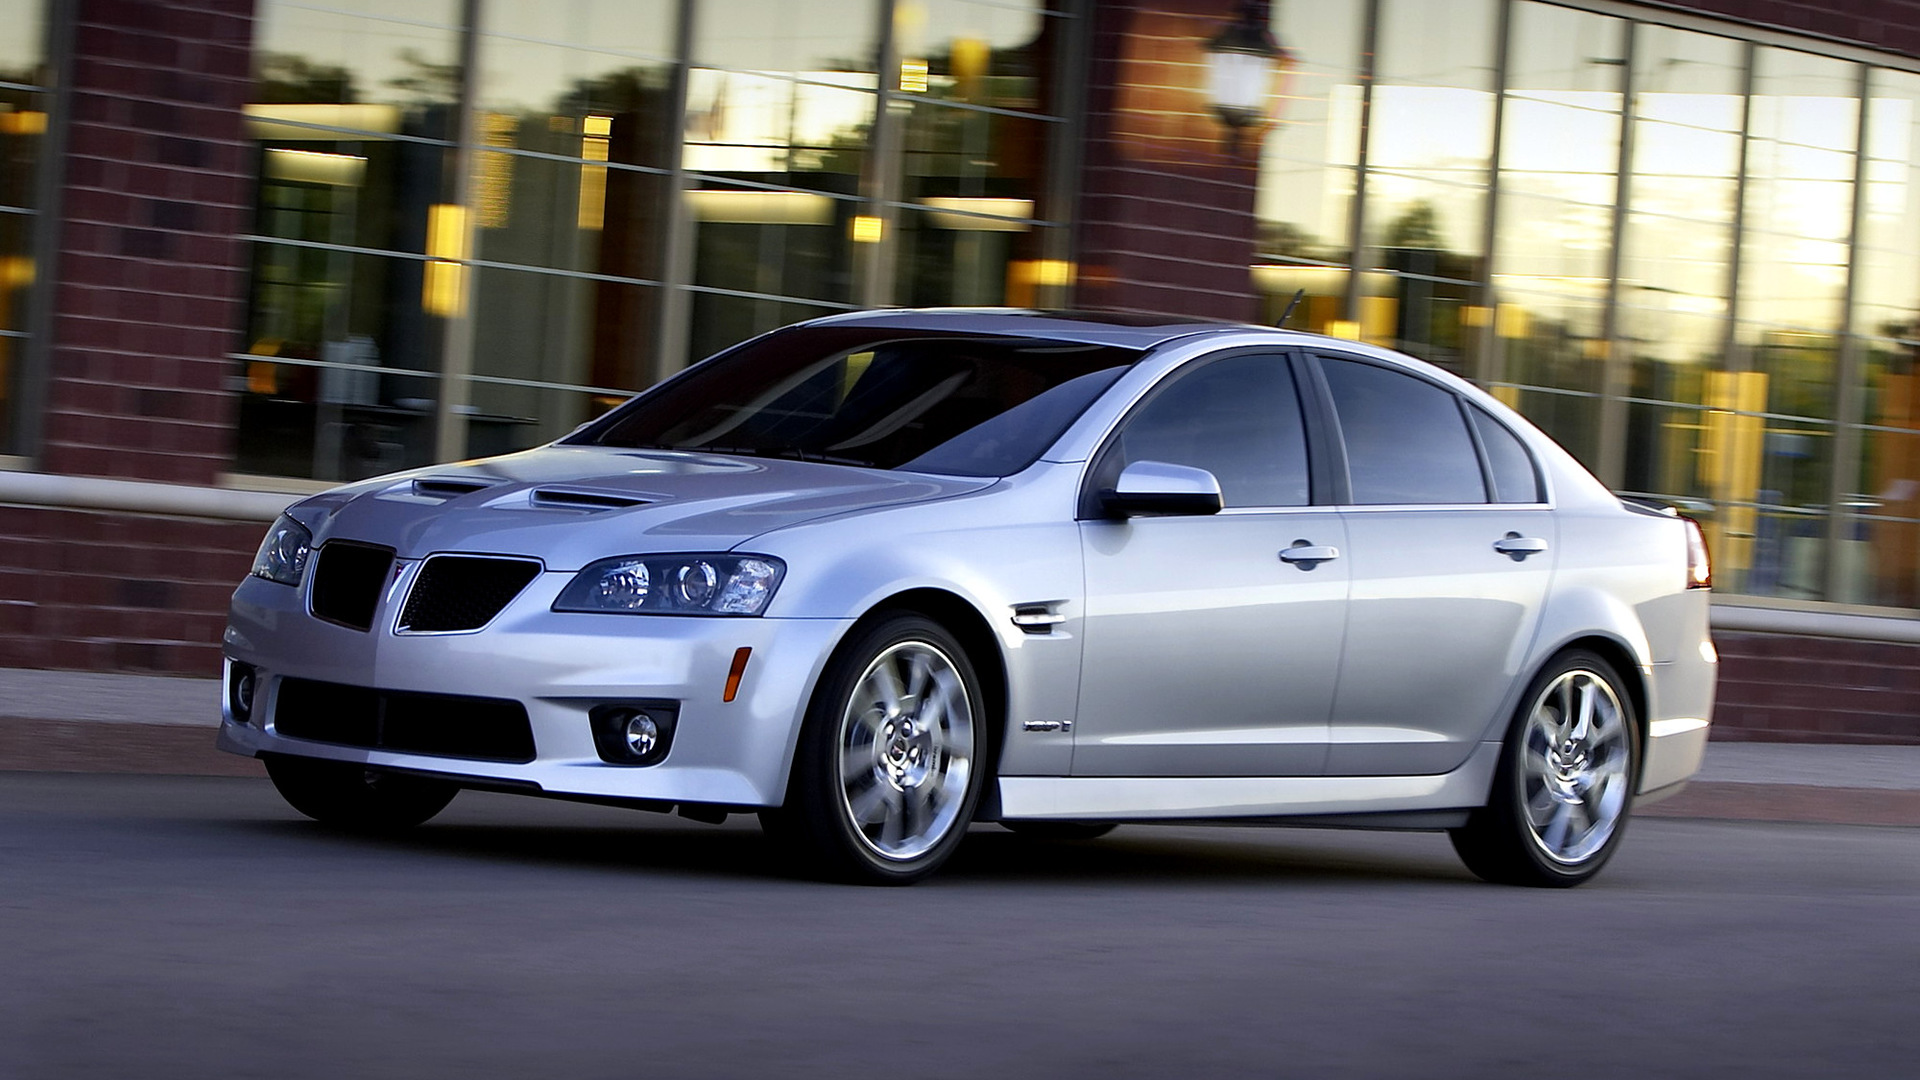 Pontiac G8 Gxp 2008 Wallpapers And Hd Images Car Pixel